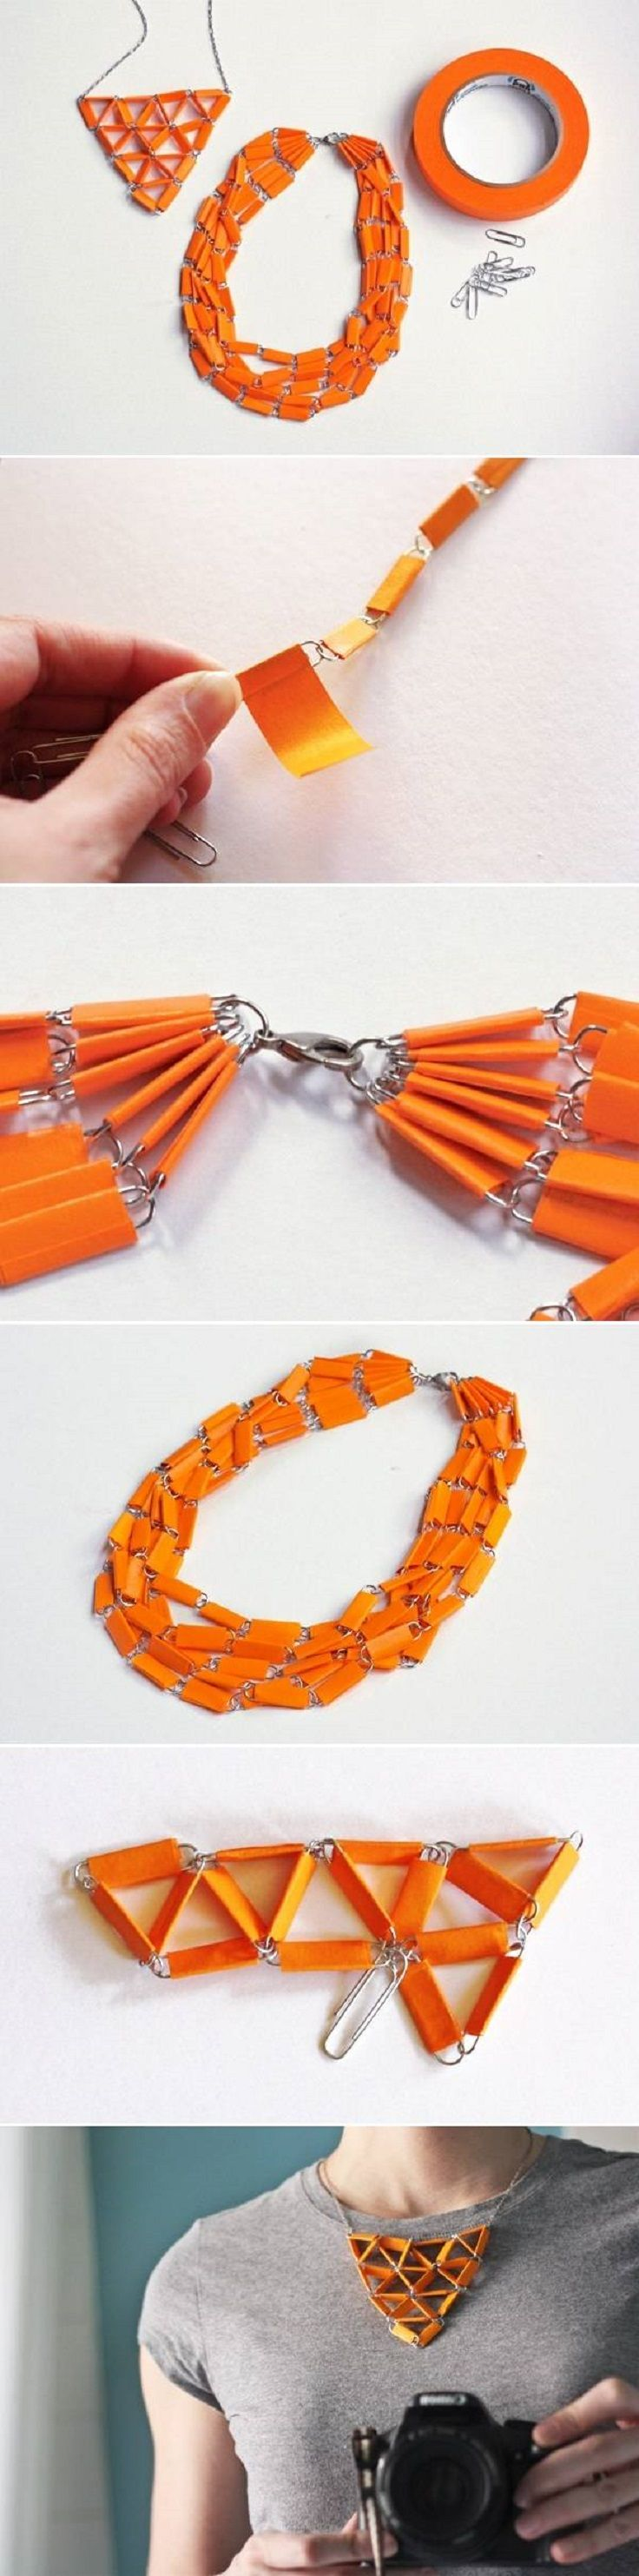 Top 10 Best DIY Necklaces